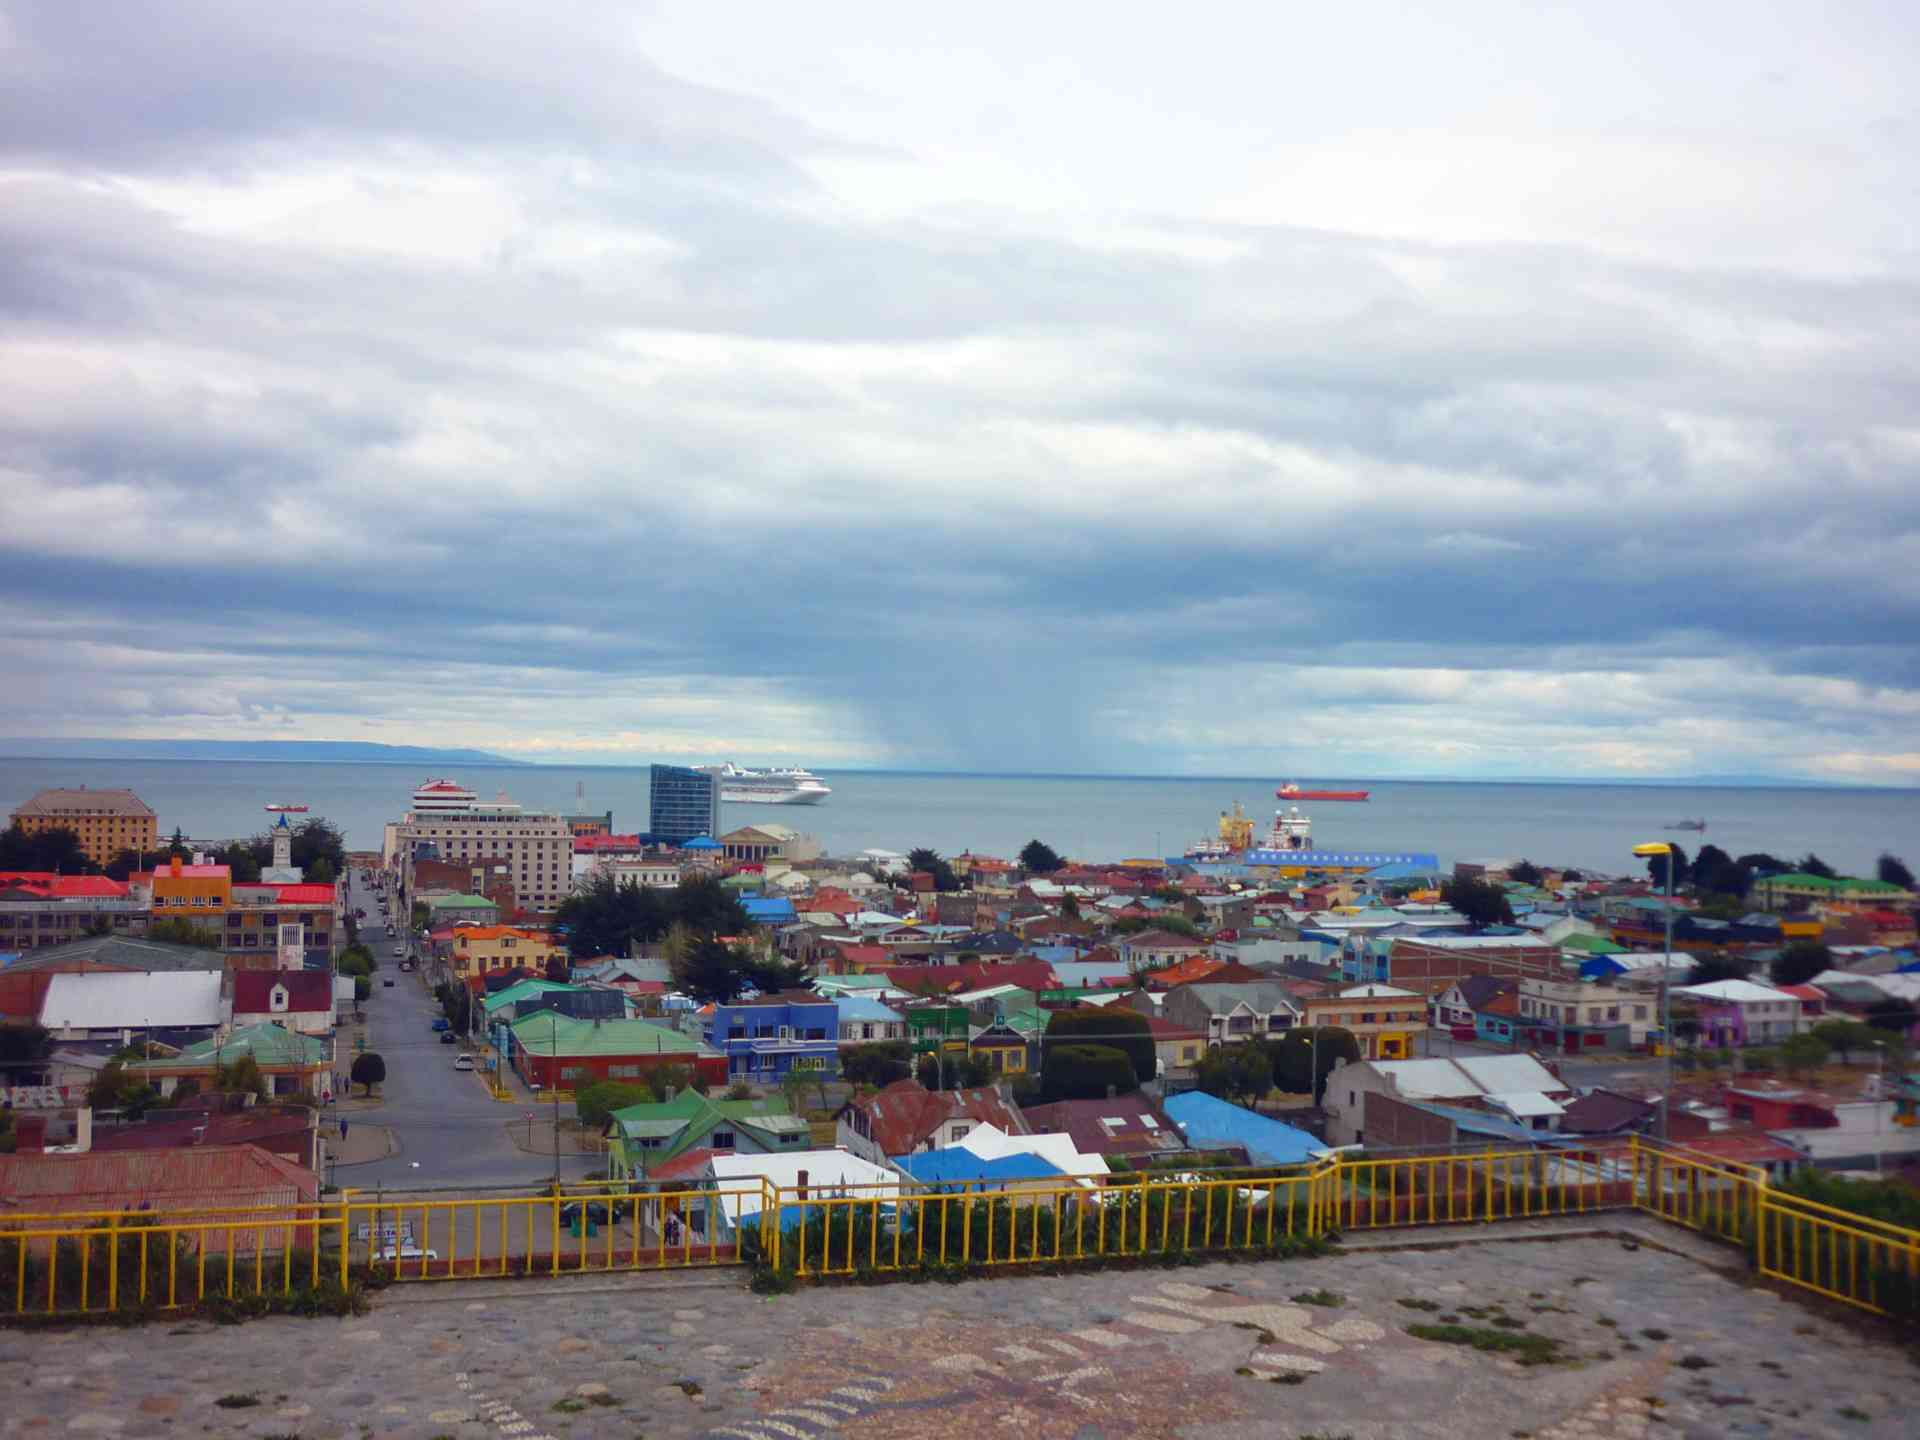 Views over Punta Arenas, Chile by Gary Hayes